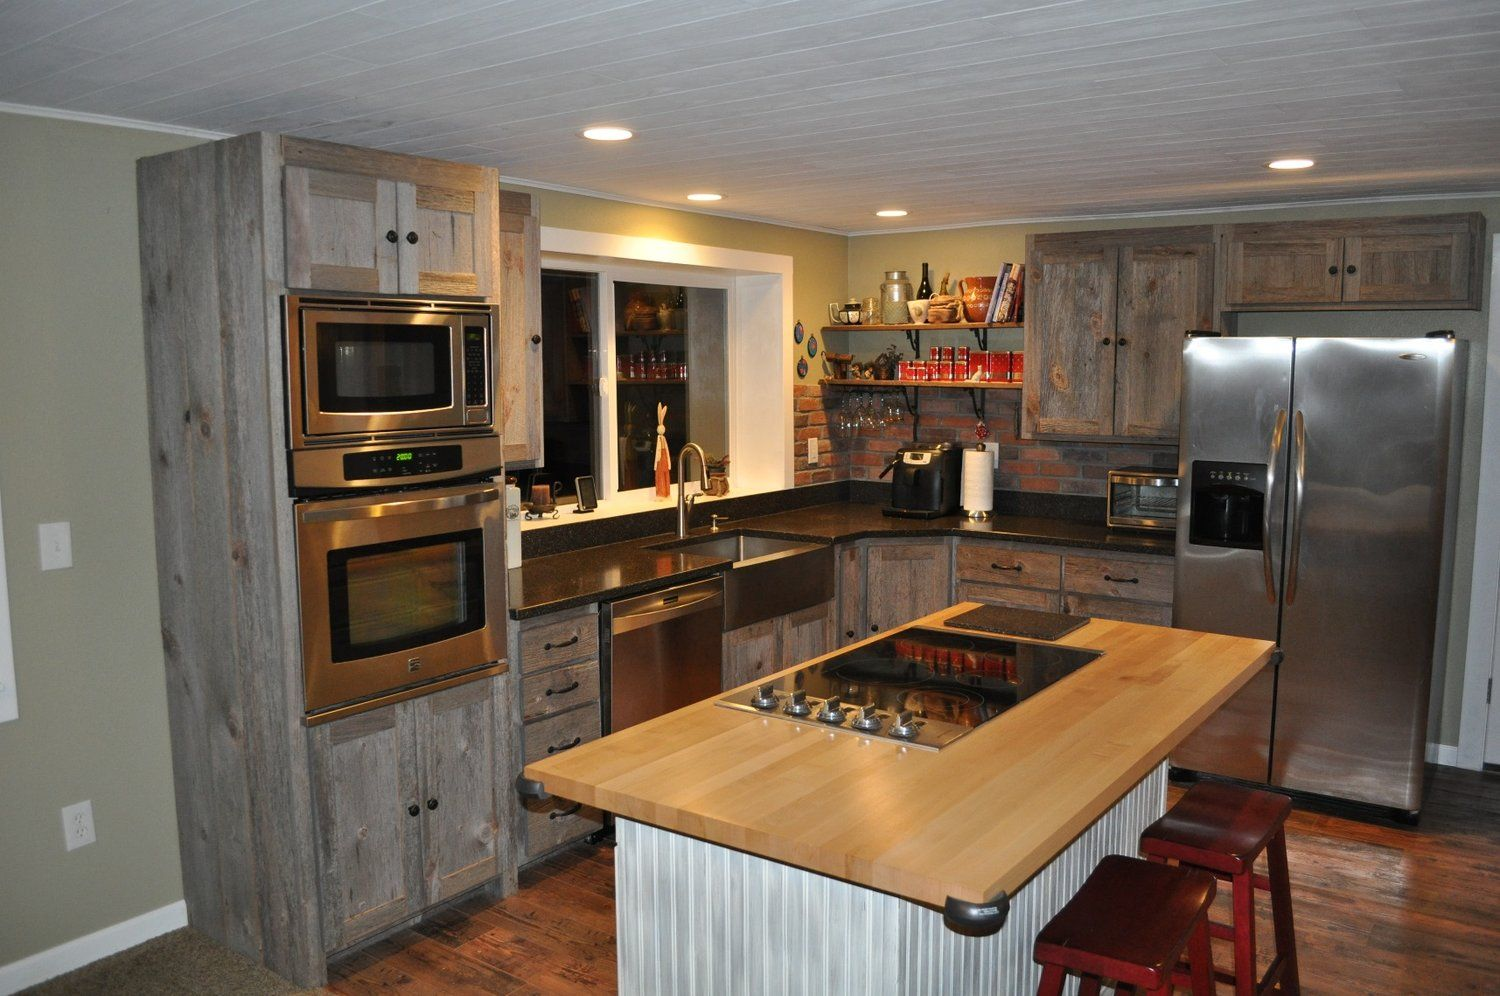 Weathered Gray Barn Wood Kitchen Barn Wood Furniture Rustic Barnwood And Log Furniture By In 2020 Kitchen Cabinets For Sale Rustic Kitchen Cabinets Rustic Kitchen